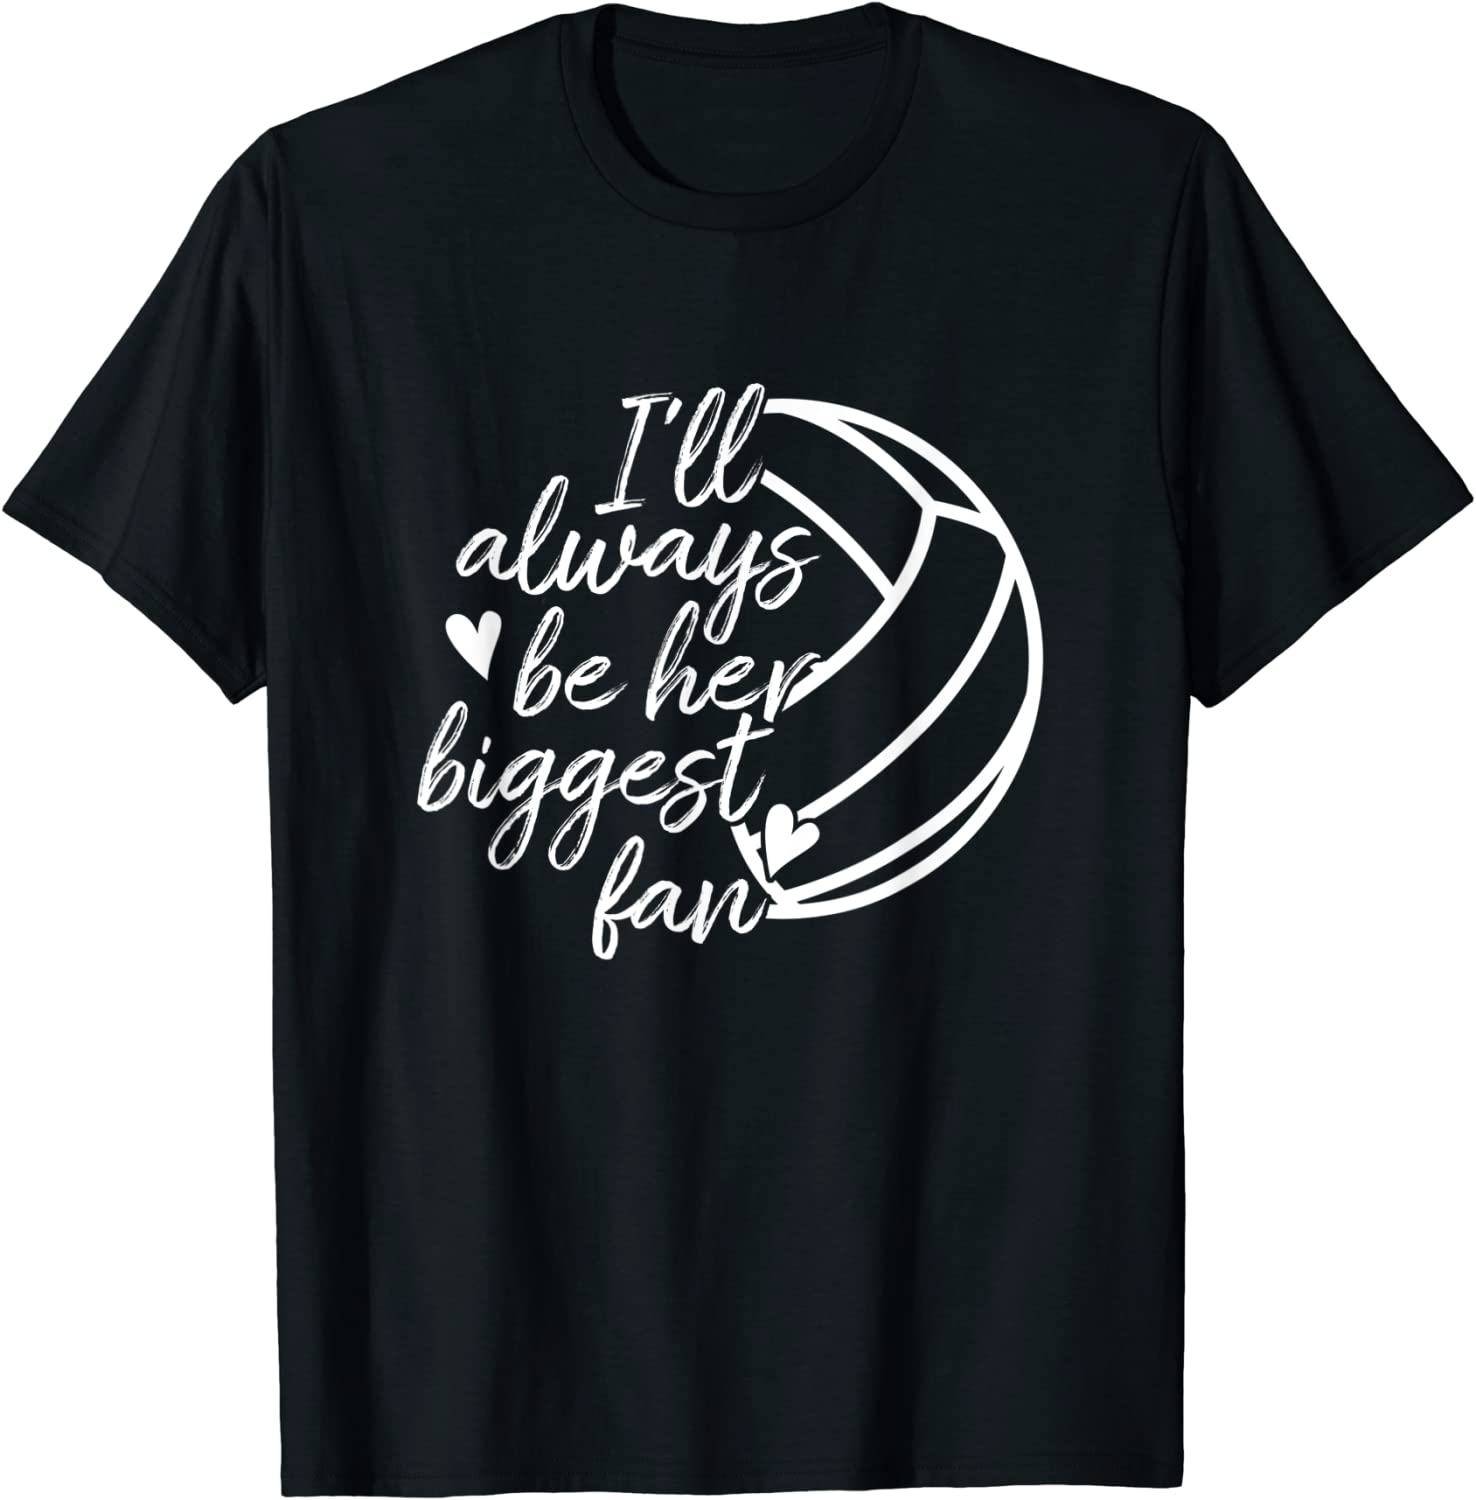 Soccer Mom Shirt Gift For Mom/'s Bella 6004 Women/'s Favorite Tee, I/'ll Always Be Your Biggest Fan Game Day Shirt